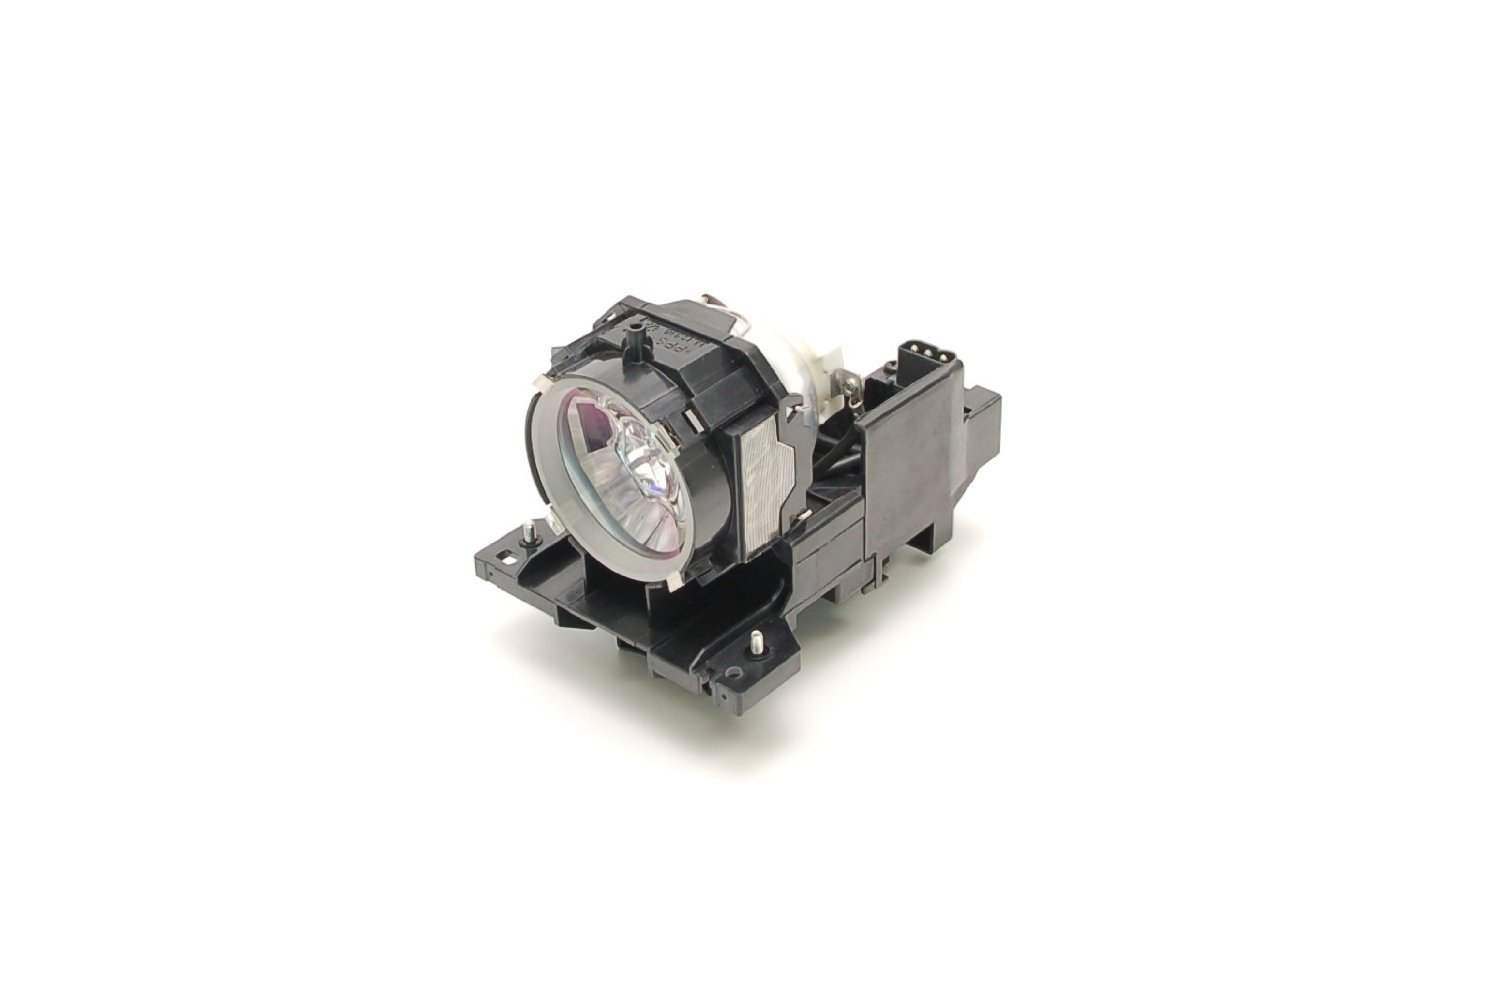 For DT00873 Replacement Projector Lamp In Housing Fit Hitachi CP-X809 CP-SX635 CP-WX625 CP-WX625W CP-WX645 CP-WUX645N CP-SX635 CP-WX625 CP-X809W DT00873 by Mogobe